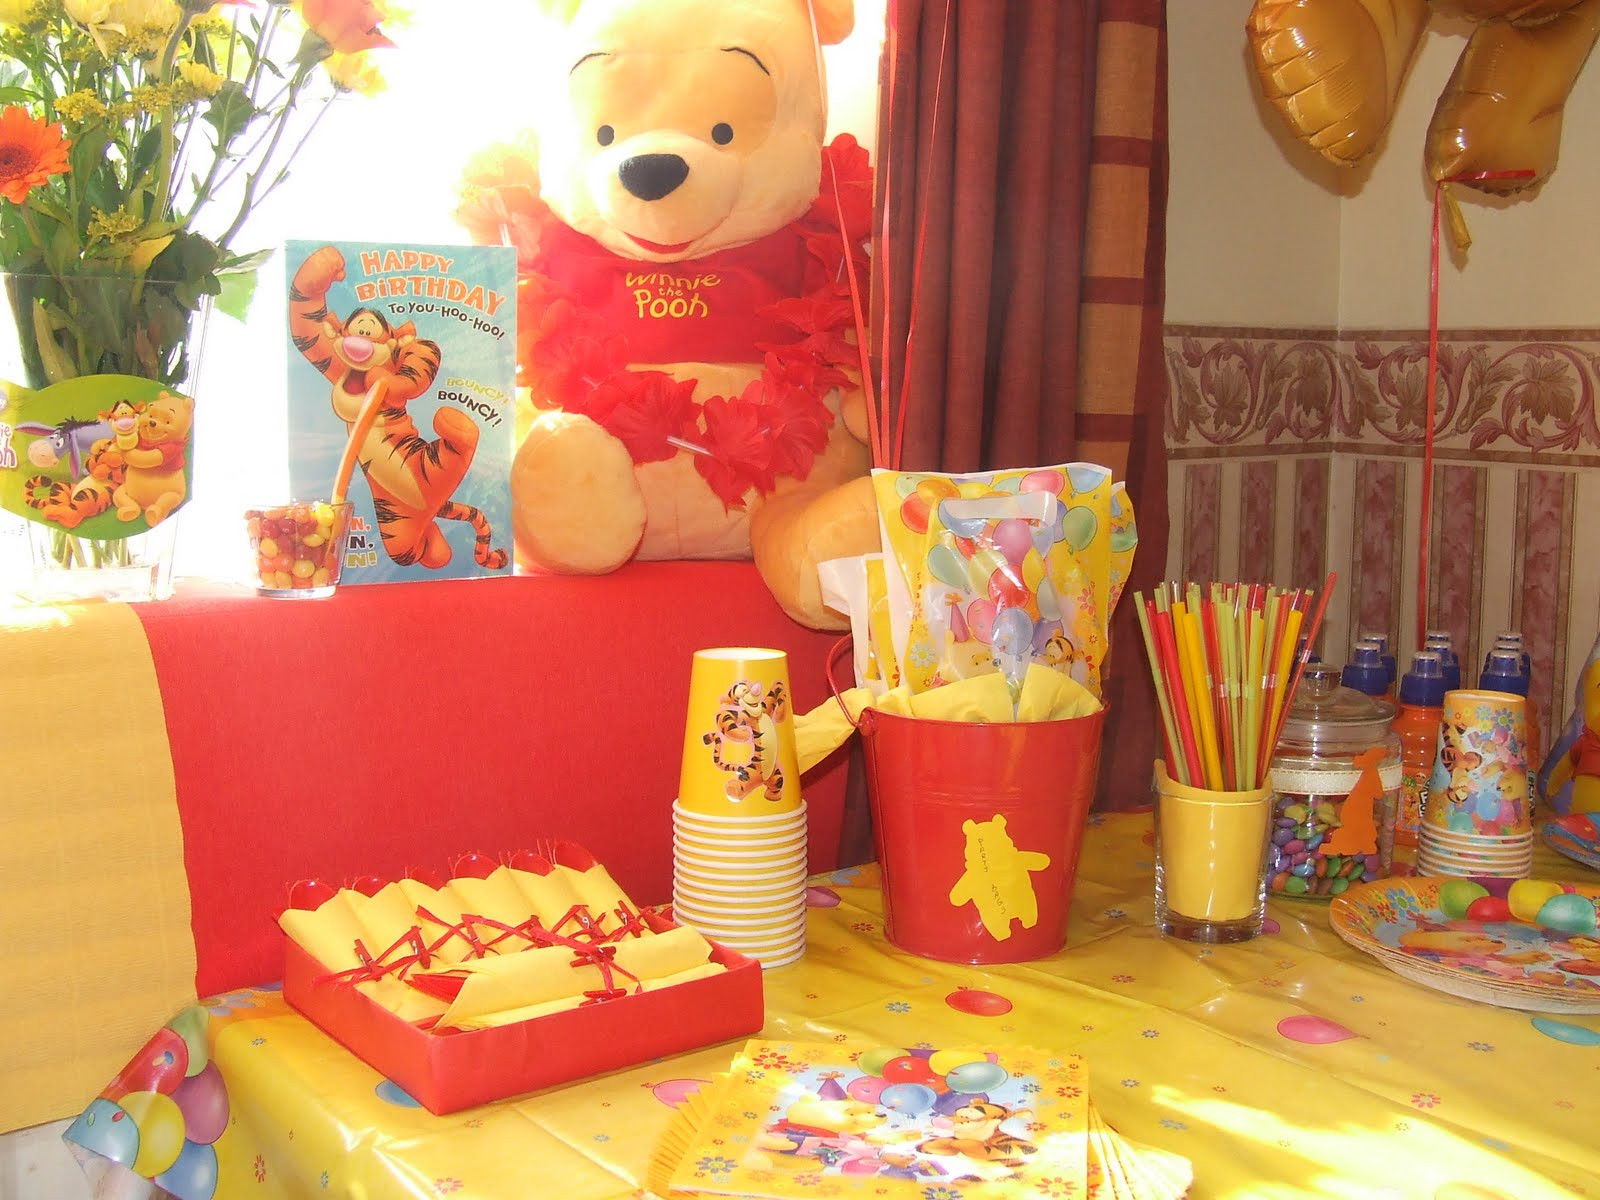 Best ideas about Winnie The Pooh Birthday Decorations . Save or Pin Filip Maxim album My Winnie the Pooh Birthday Party Now.